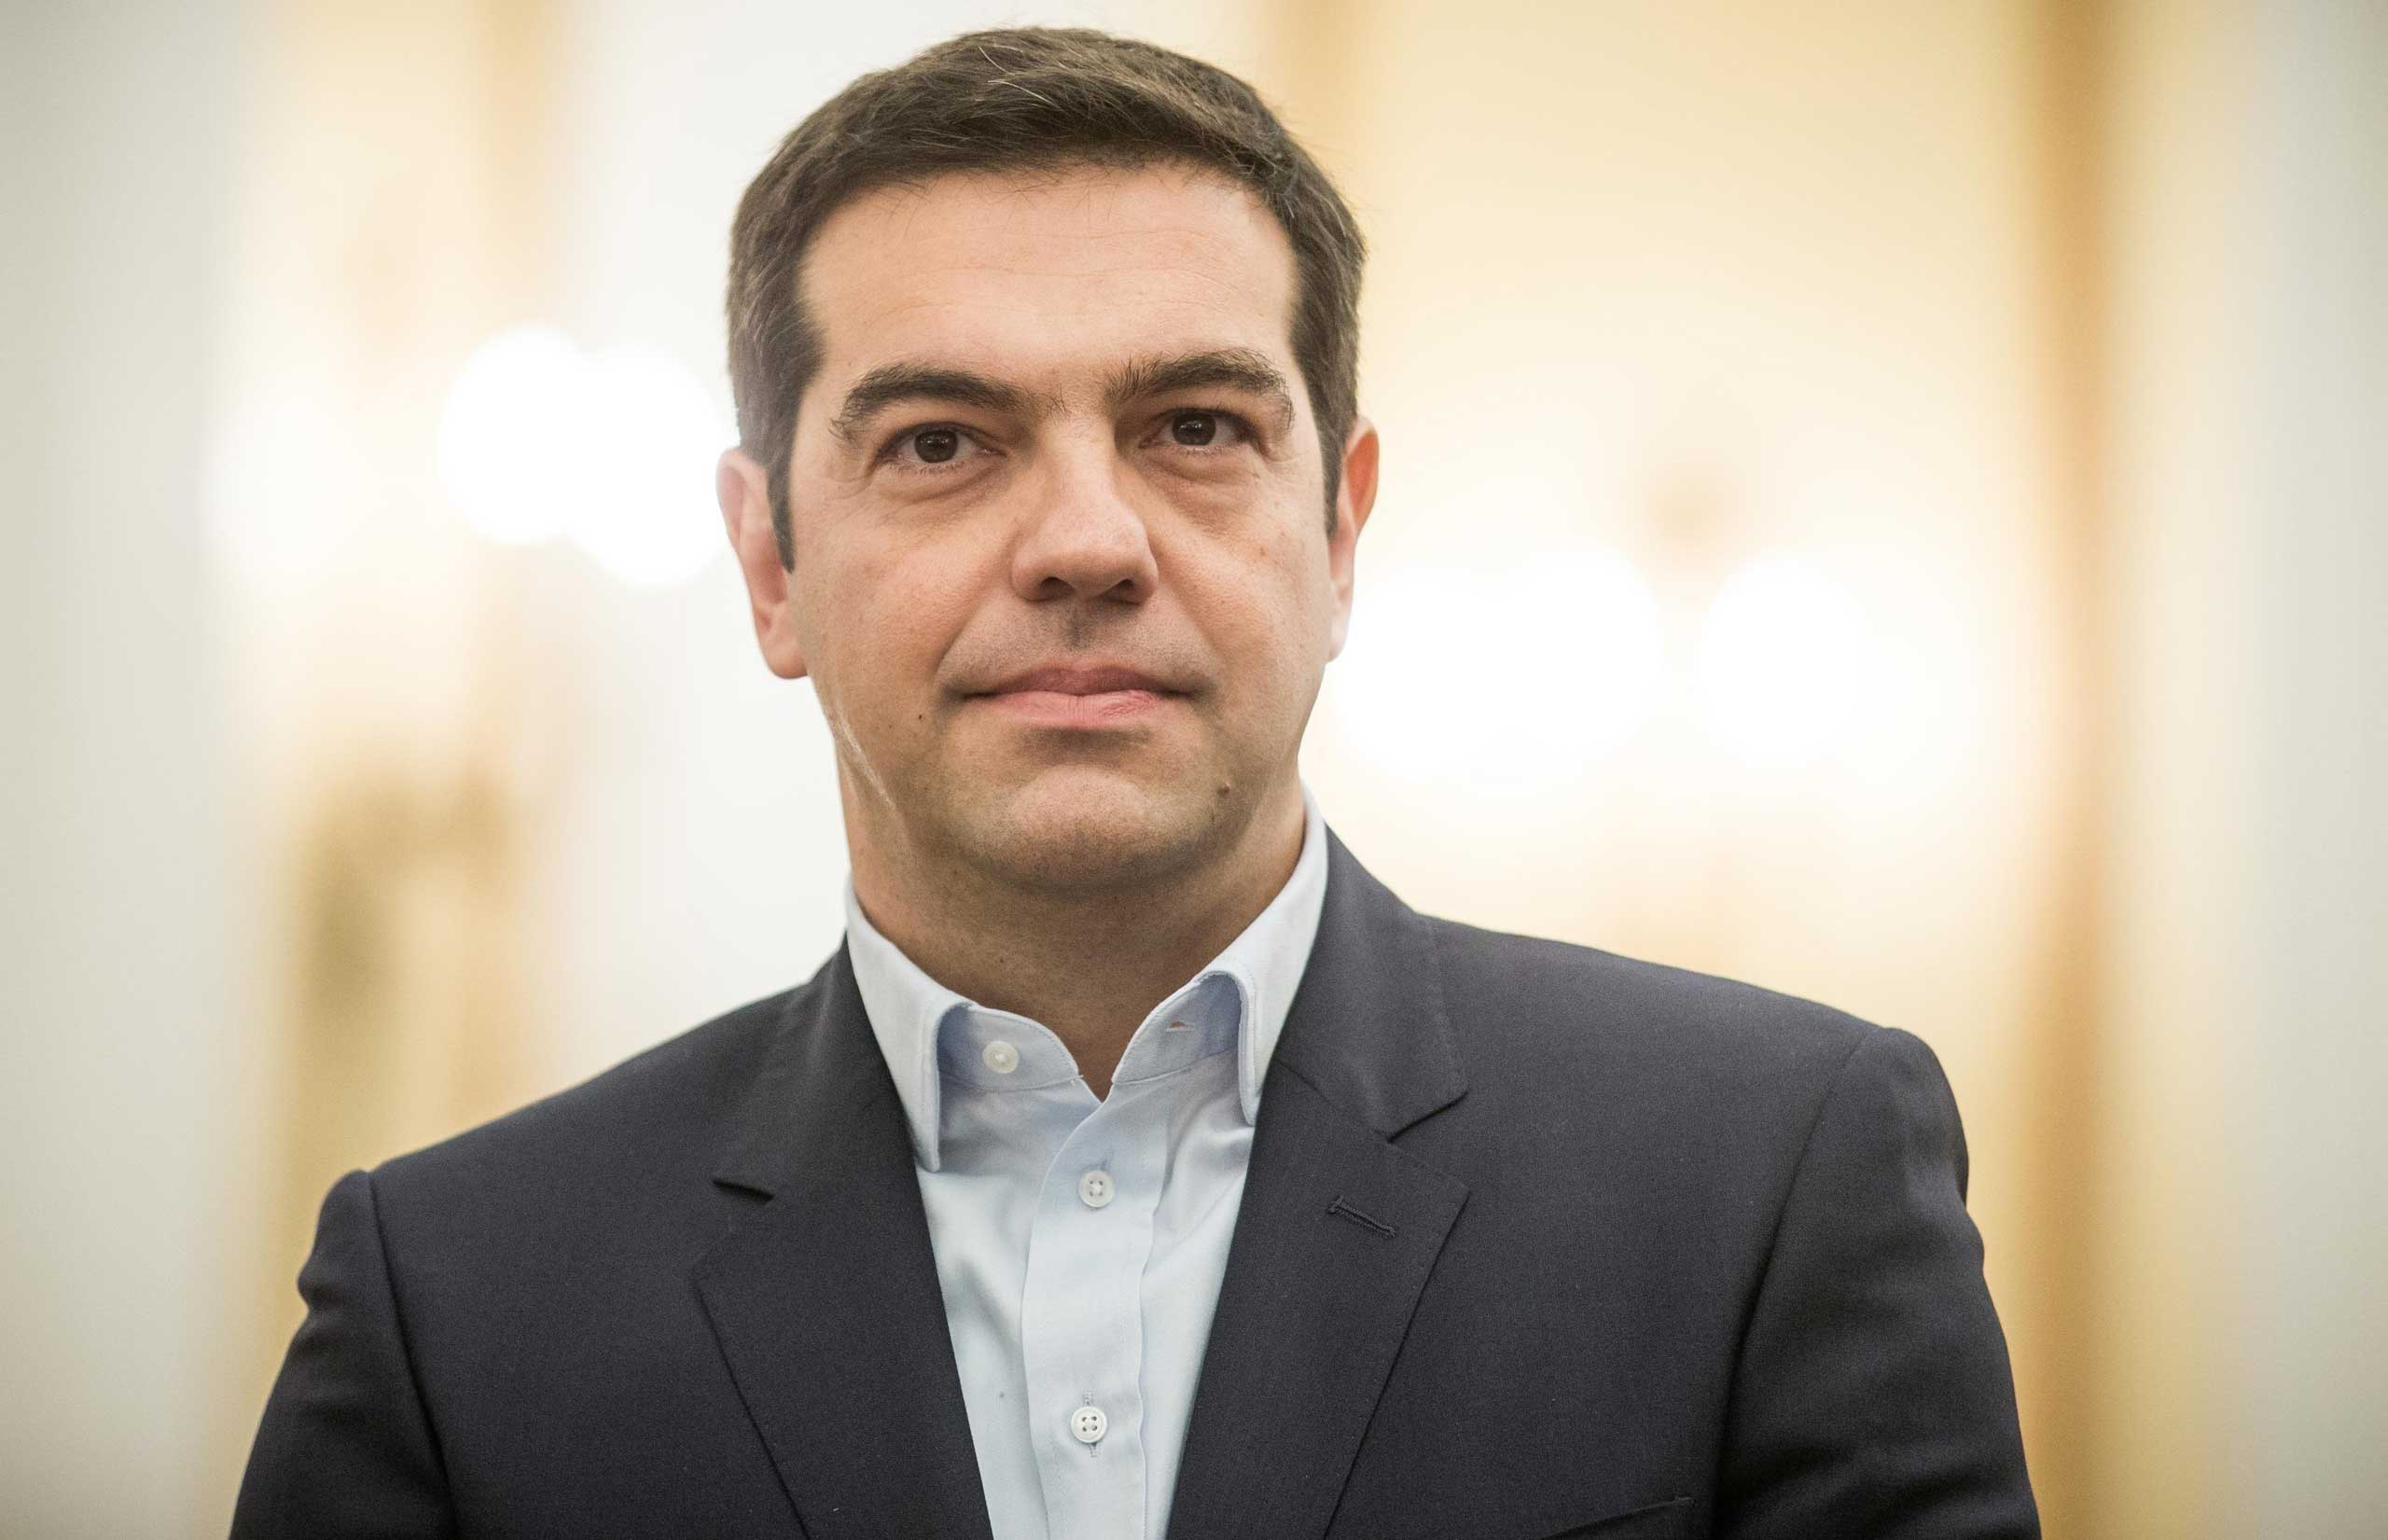 New prime minister Alexis Tsipras in Athens, Jan. 26, 2015.